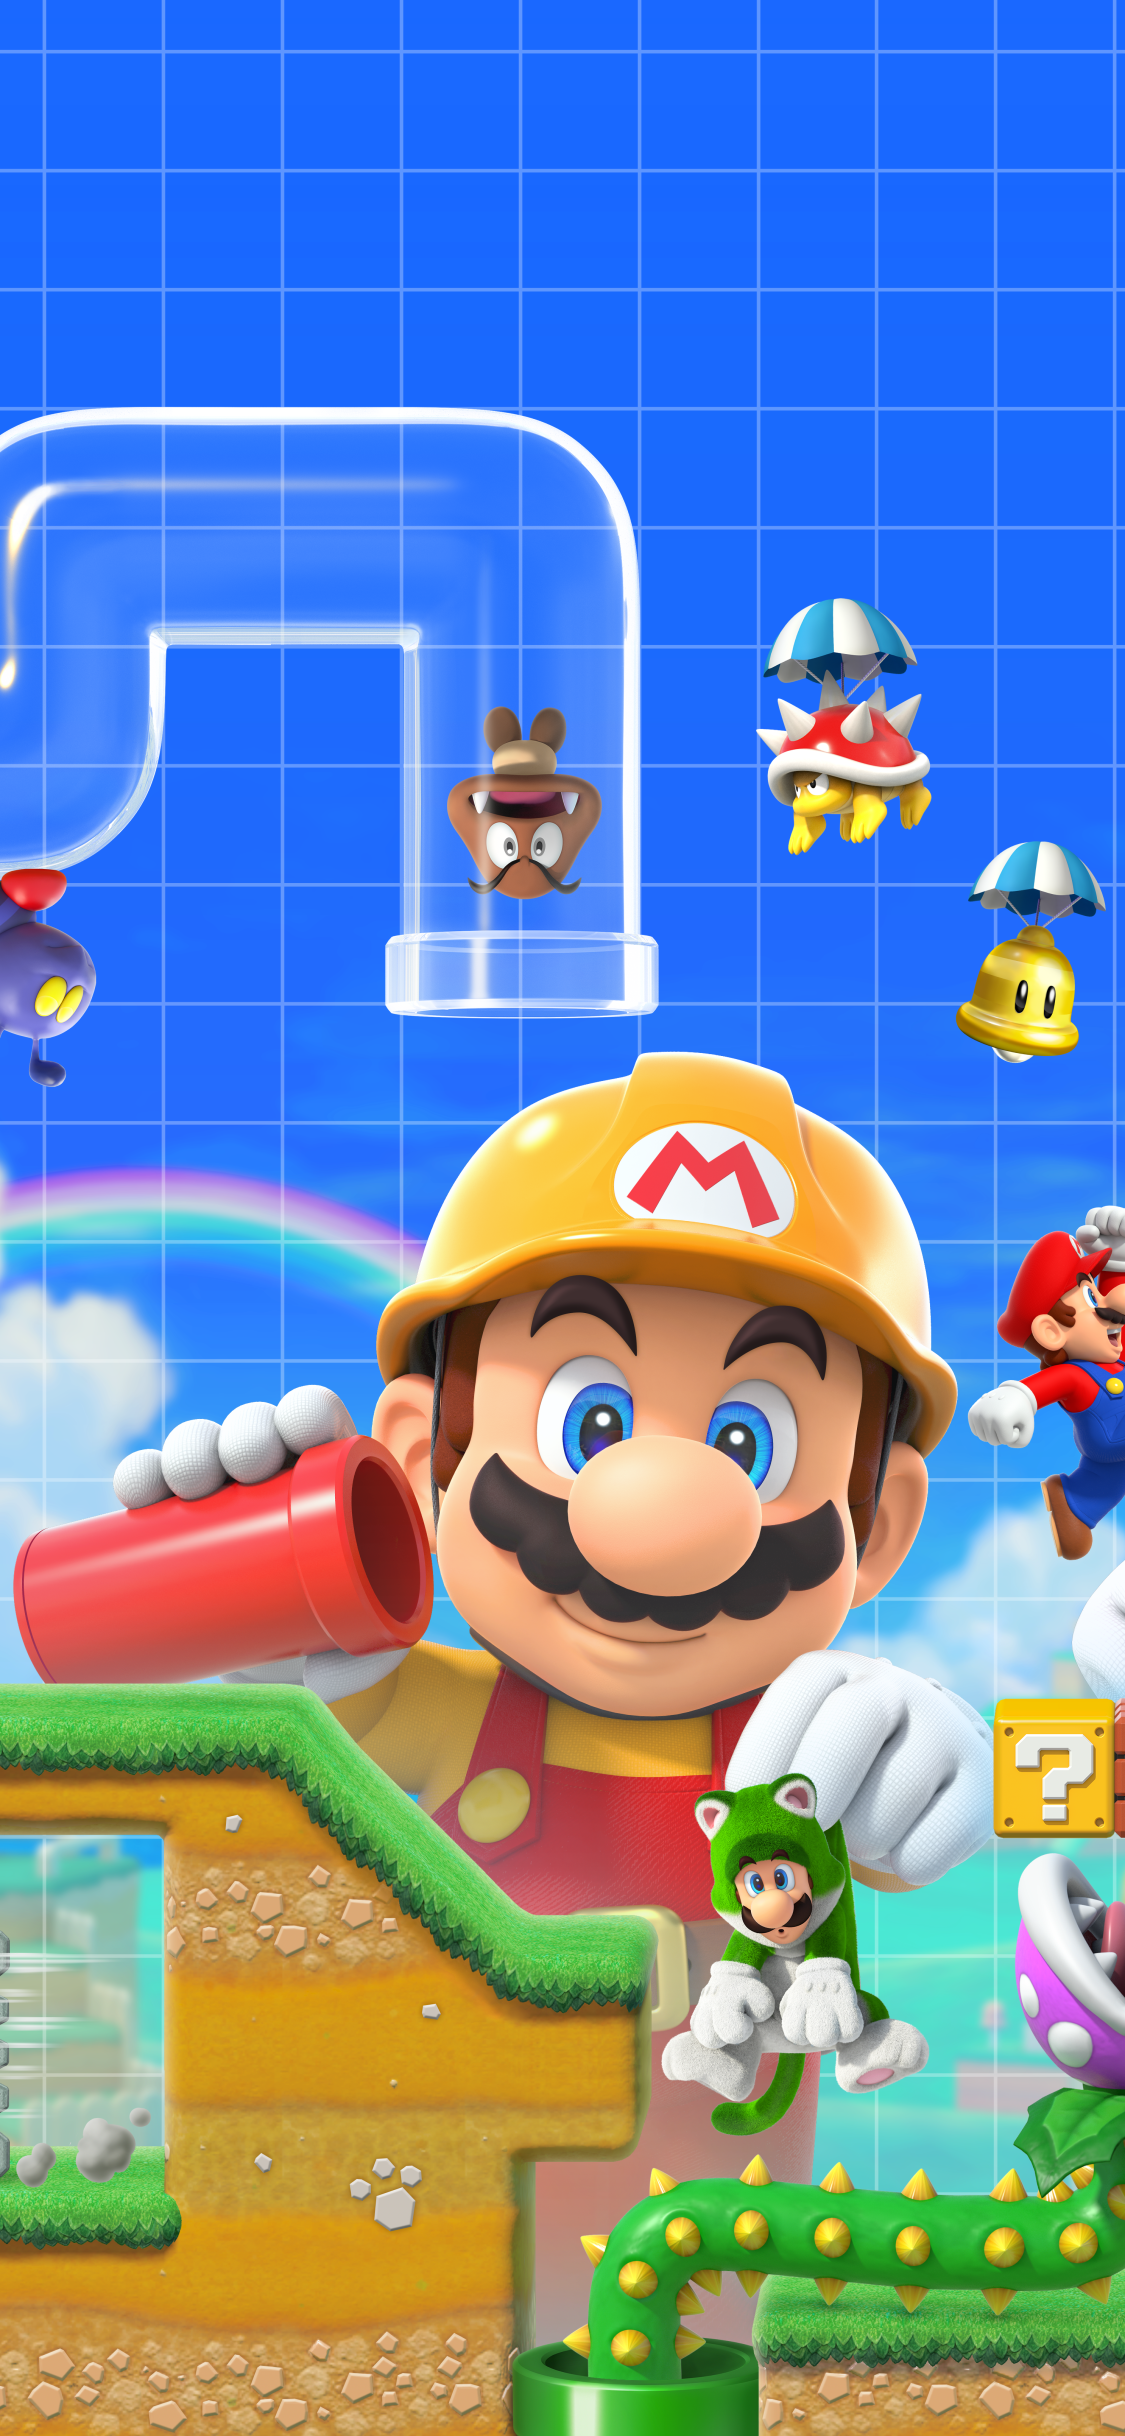 Video Game Super Mario Maker 2 1125x2436 Wallpaper Id 777777